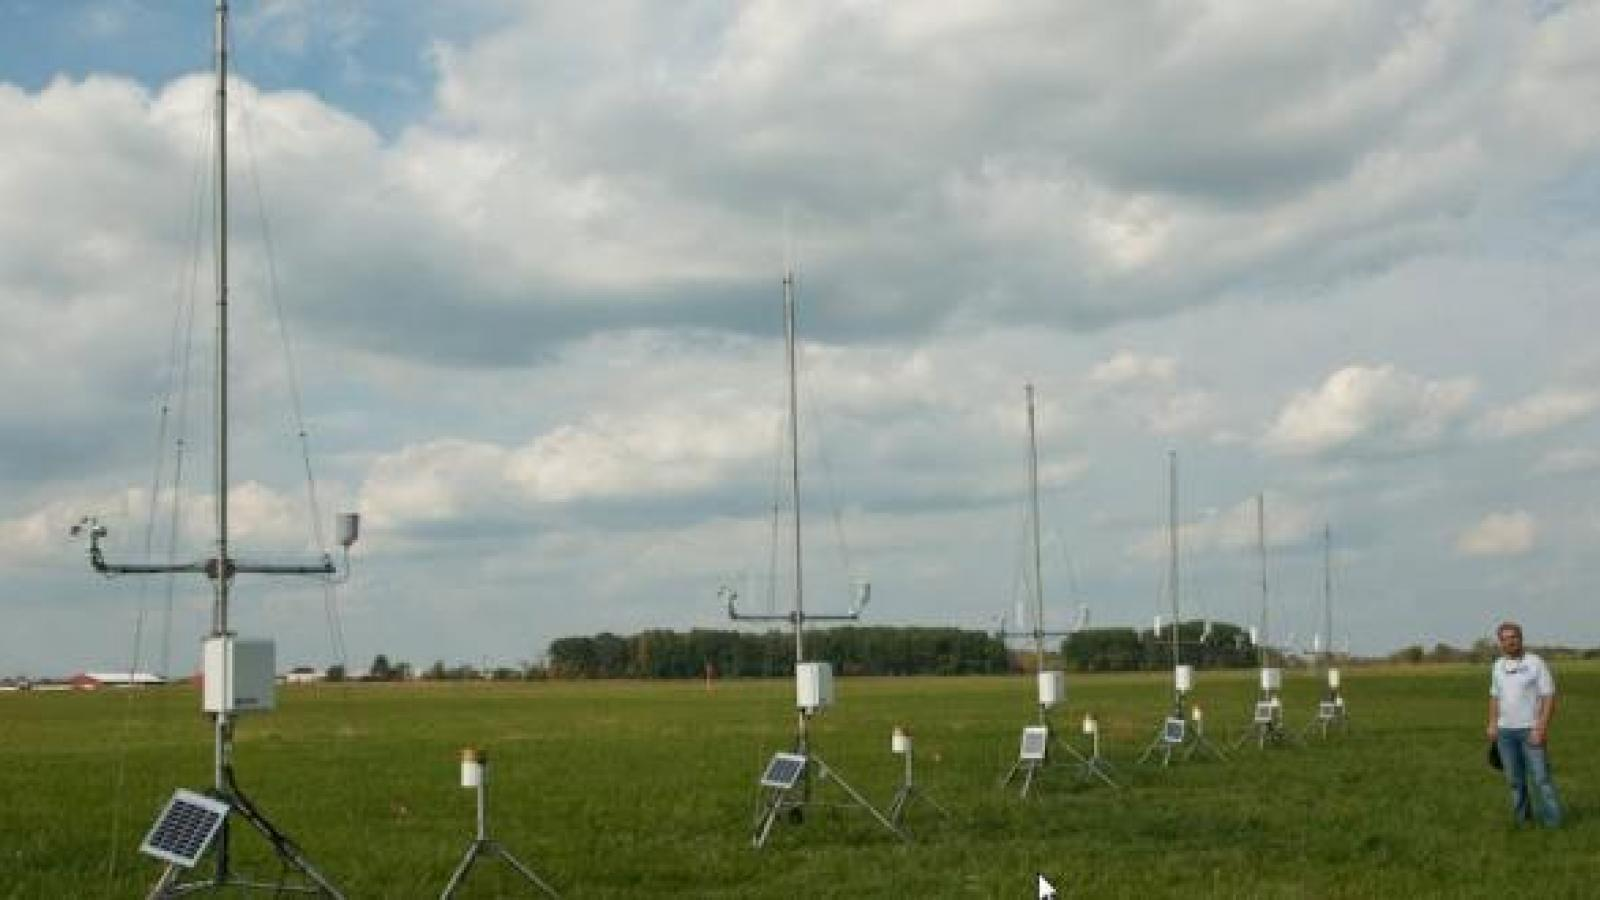 Weather instruments in the field